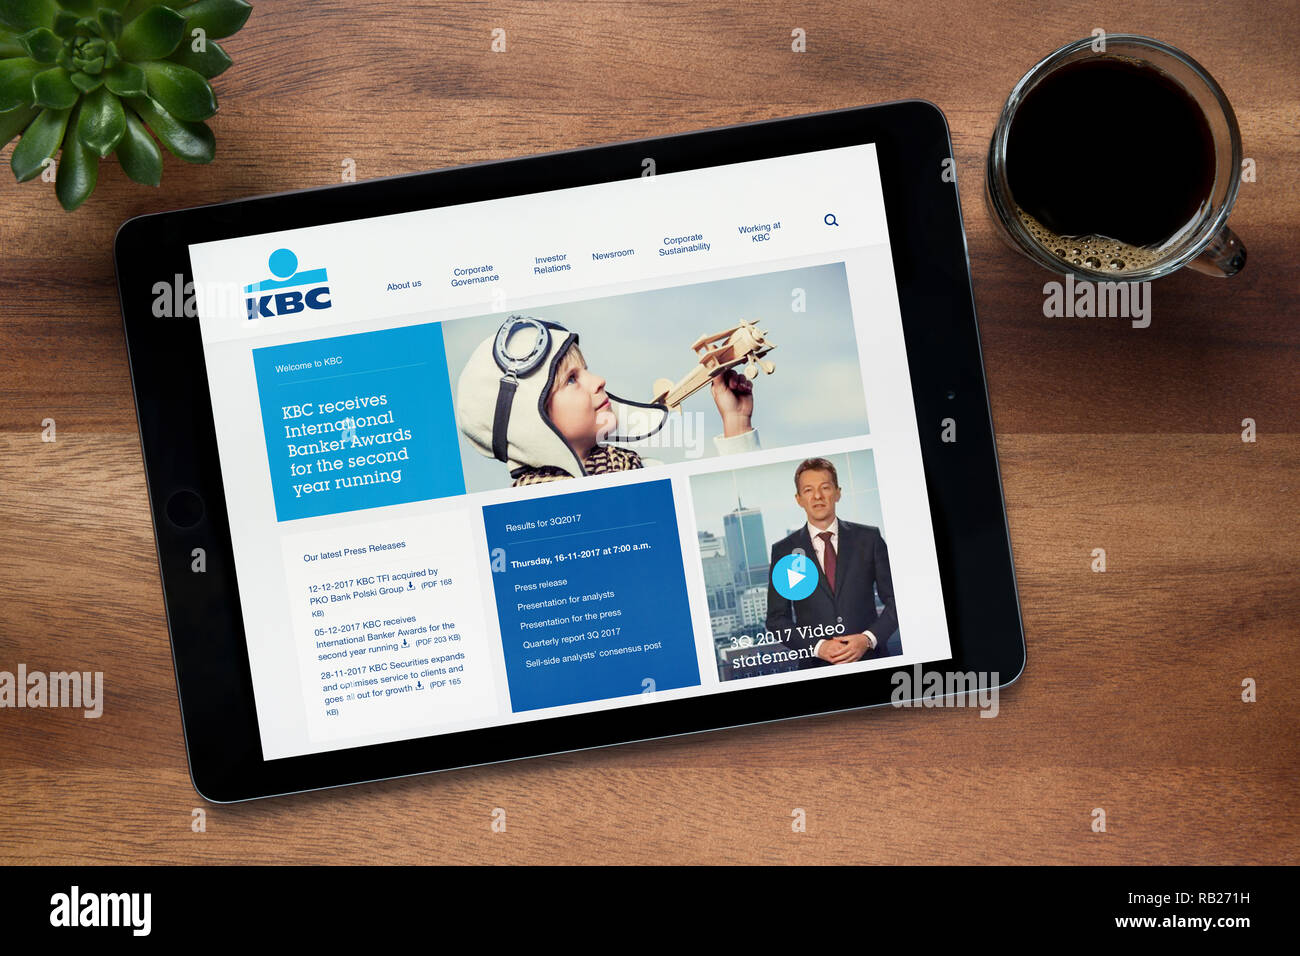 The website of KBC Bank is seen on an iPad tablet, on a wooden table along with an espresso coffee and a house plant (Editorial use only). - Stock Image